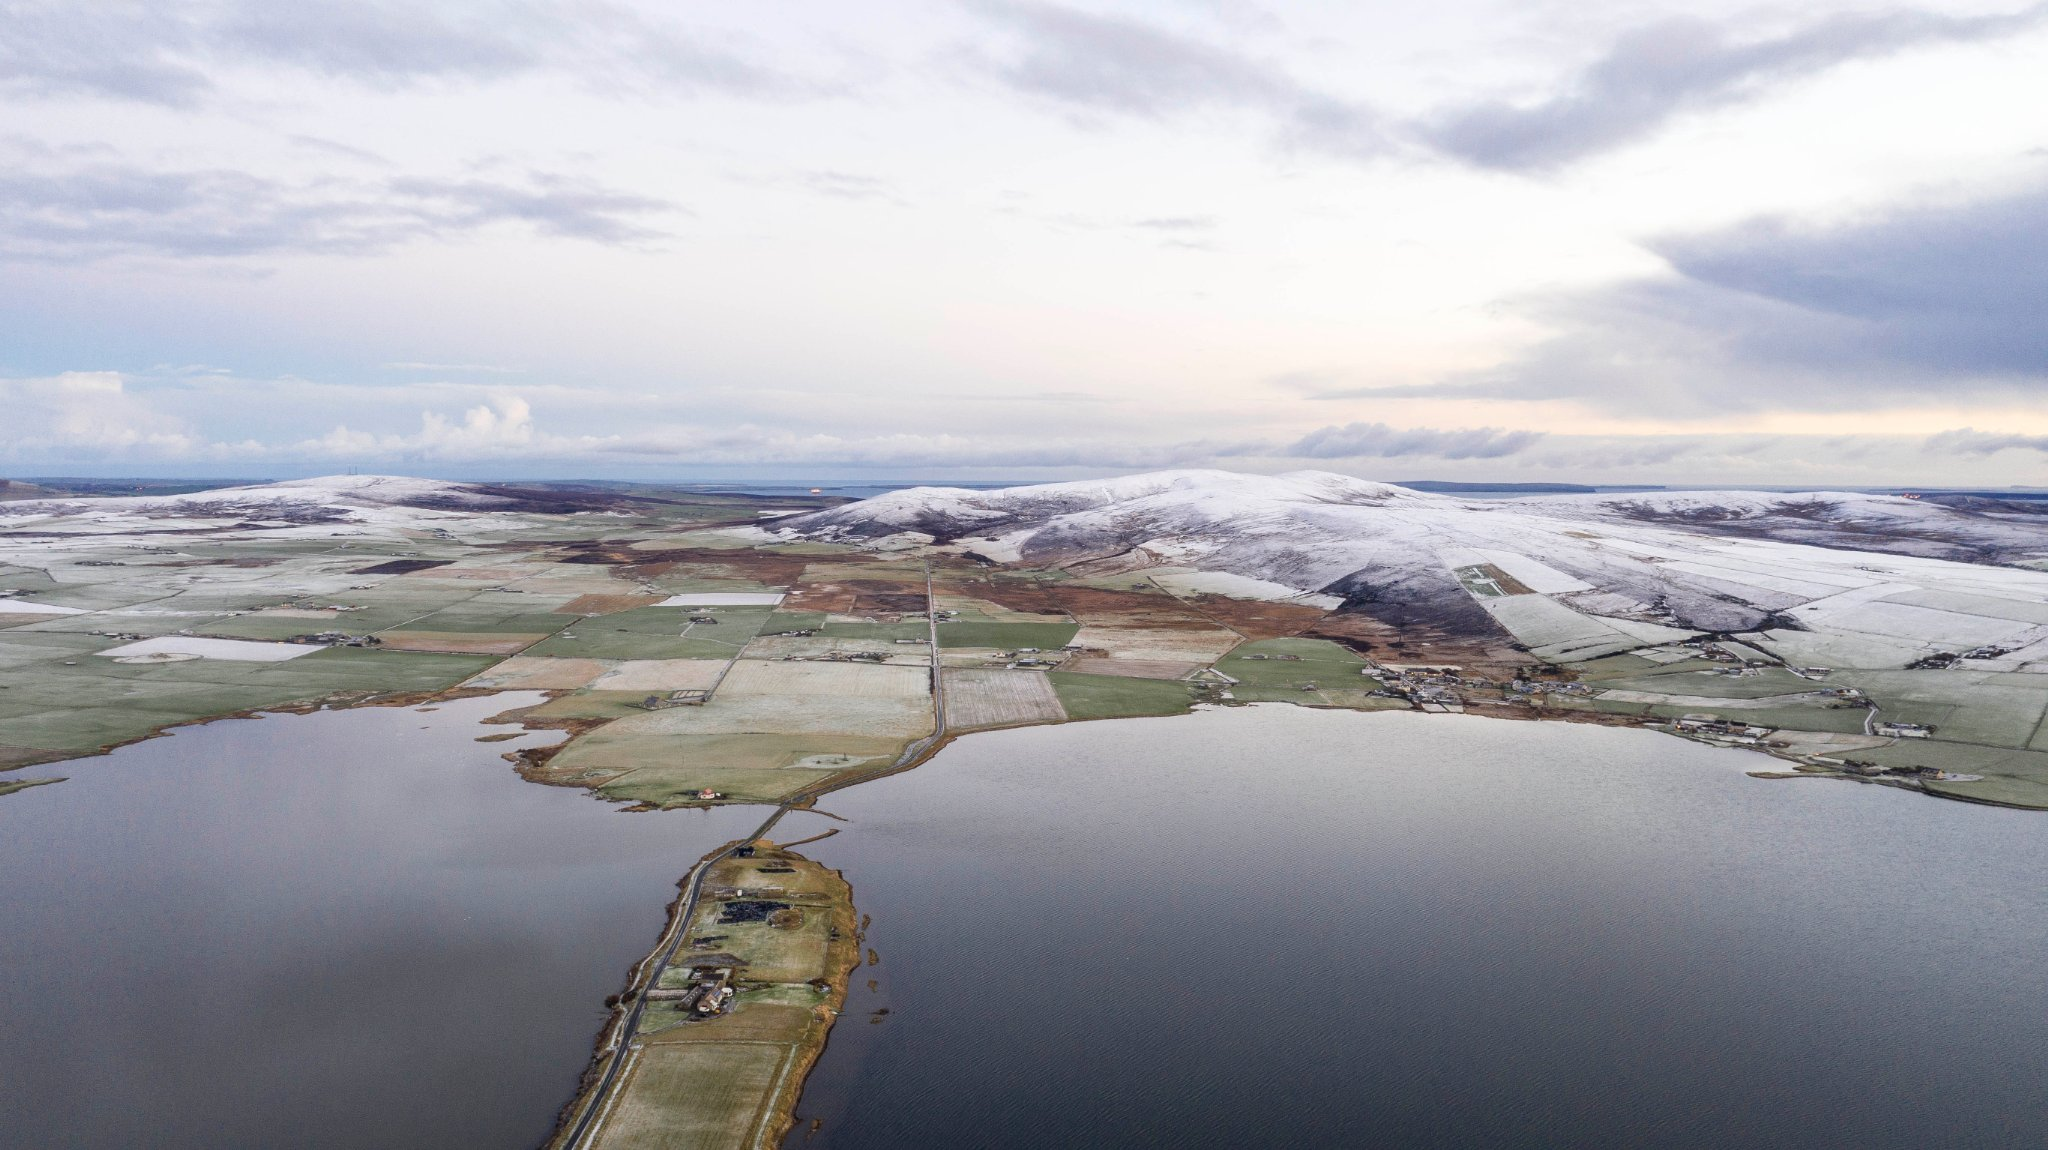 Overlooking Brodgar - image by Andras Farkas